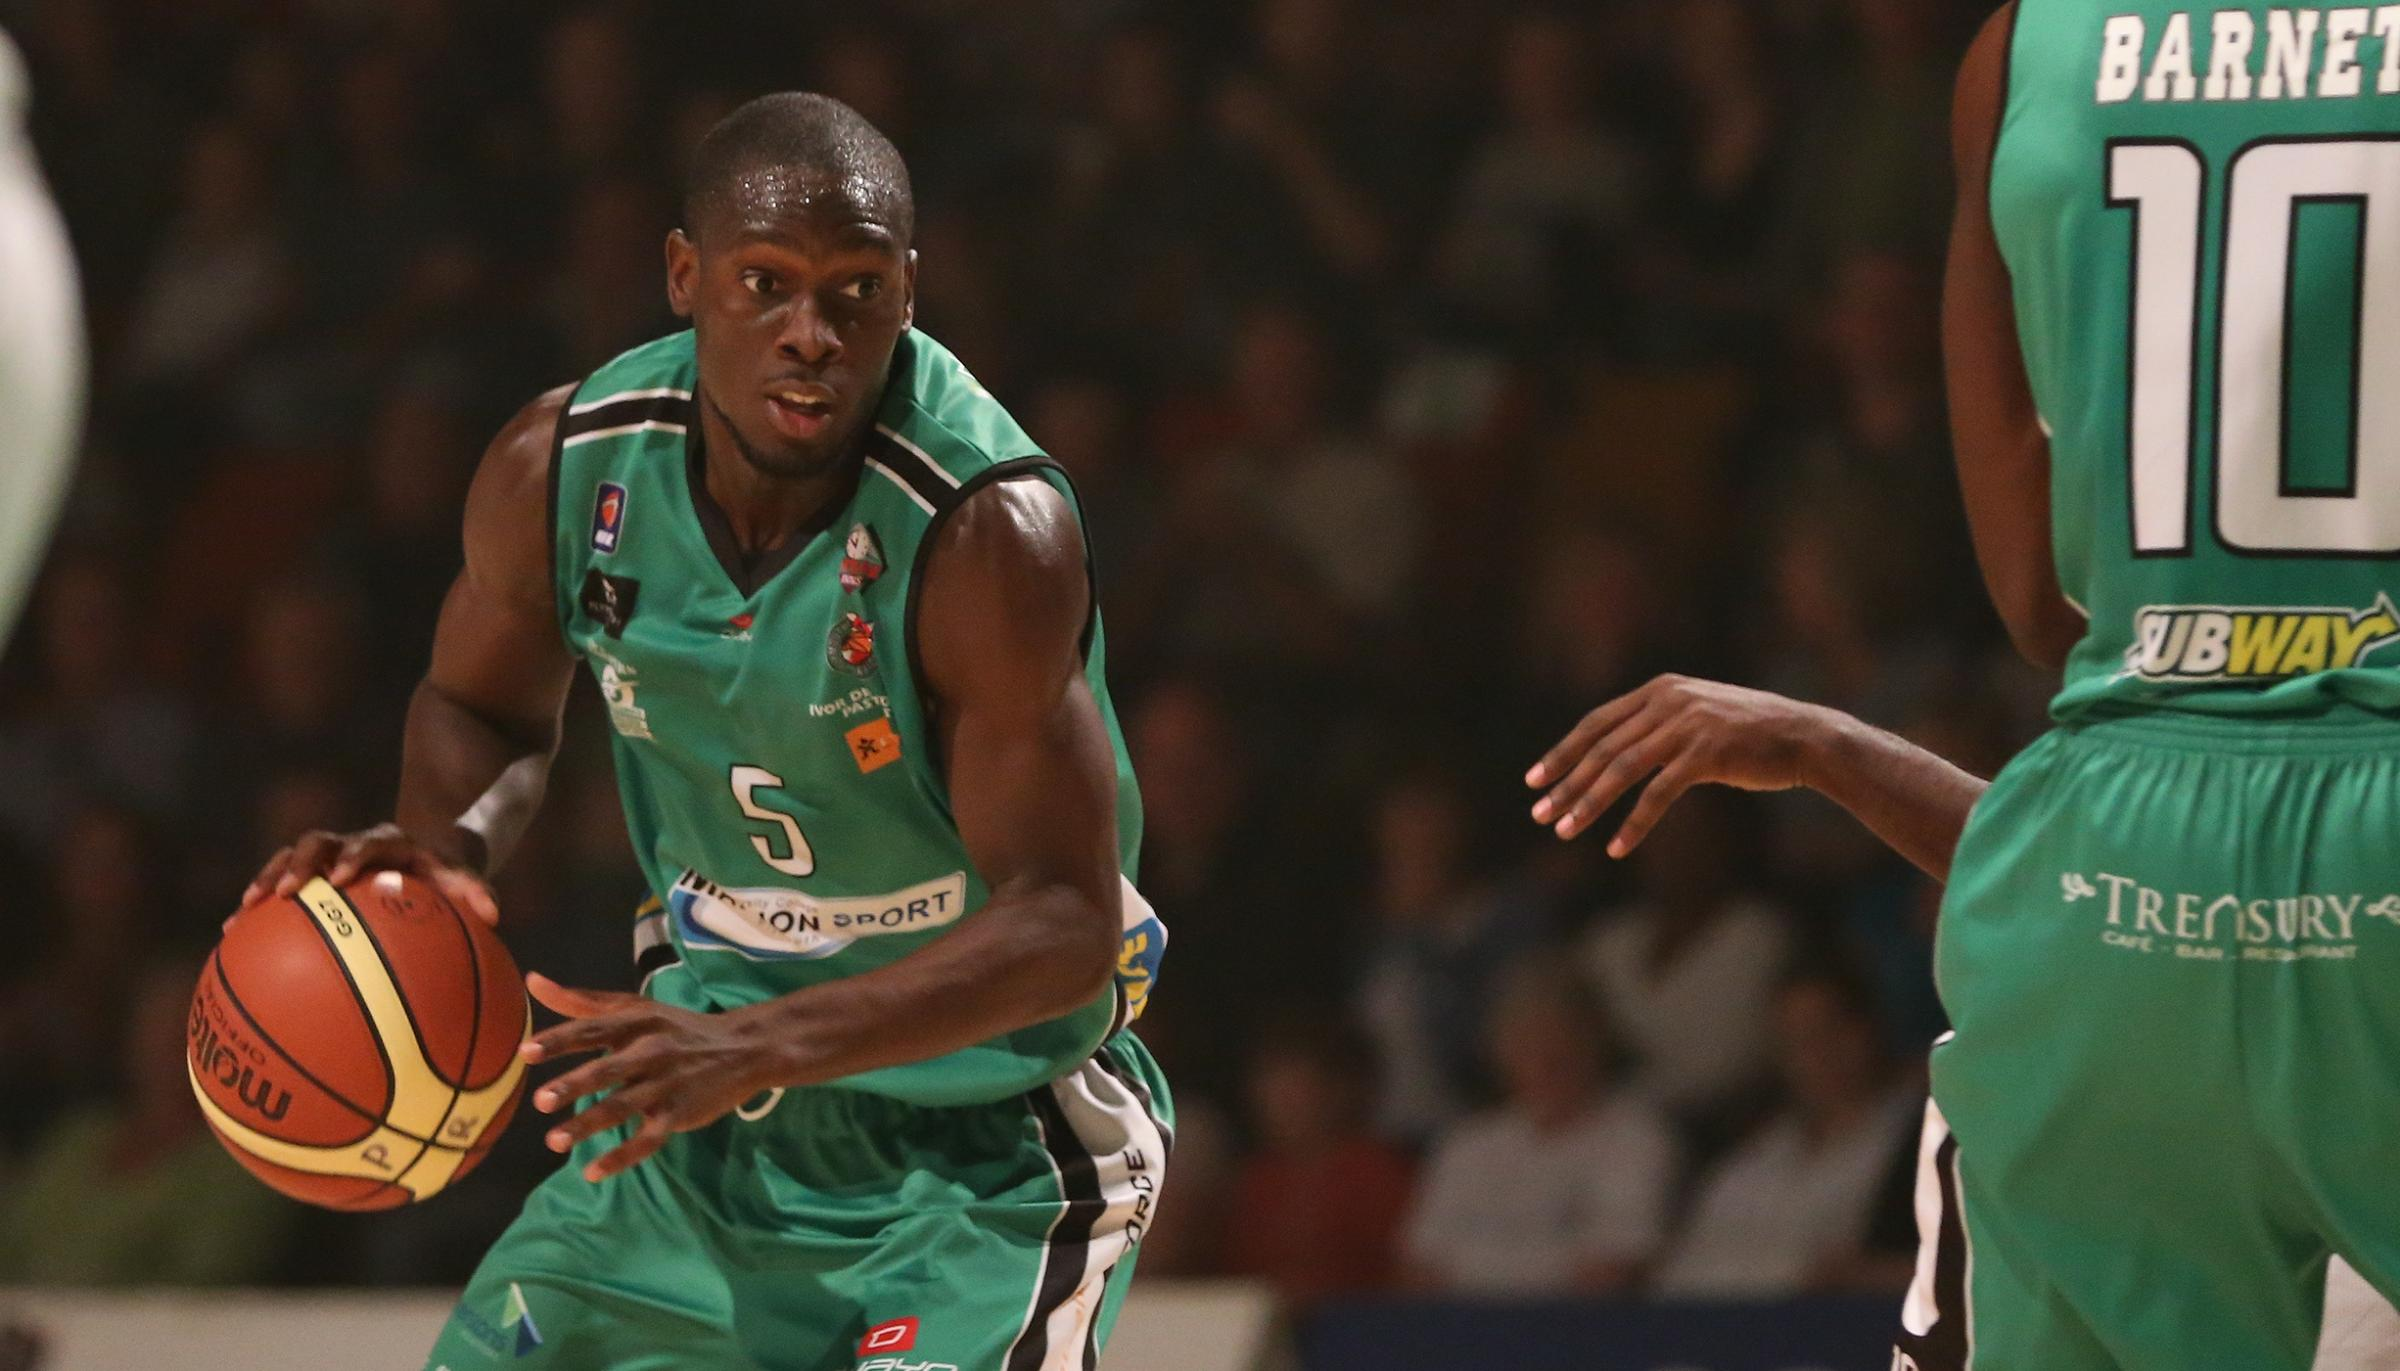 Mike Ojo in action for Plymouth Raiders